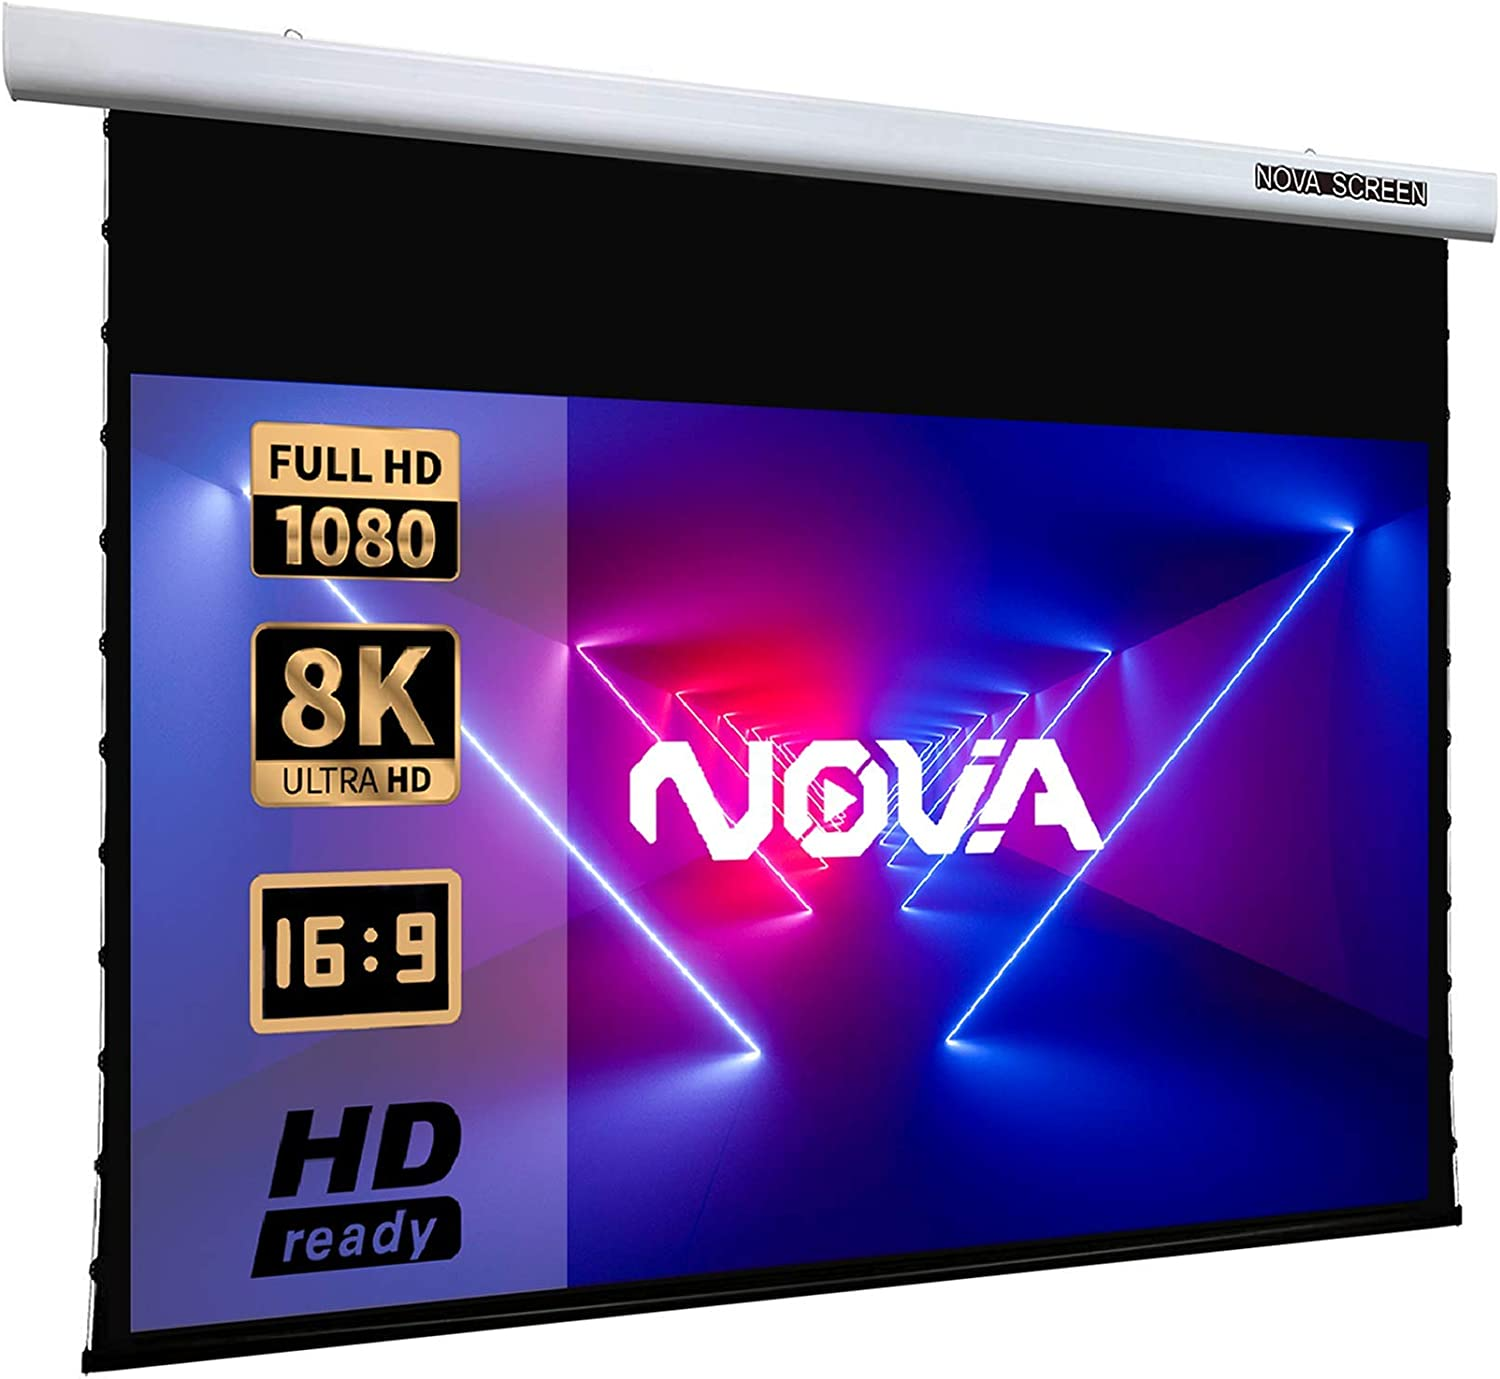 NovaScreen Spectrum Tab-Tension, 100-inch, Active 3D 1080 8K Ultra HD [16:9]. Electric Motorized Projector Screen, Indoor/Outdoor Projector Movie Screen for Home Theater.